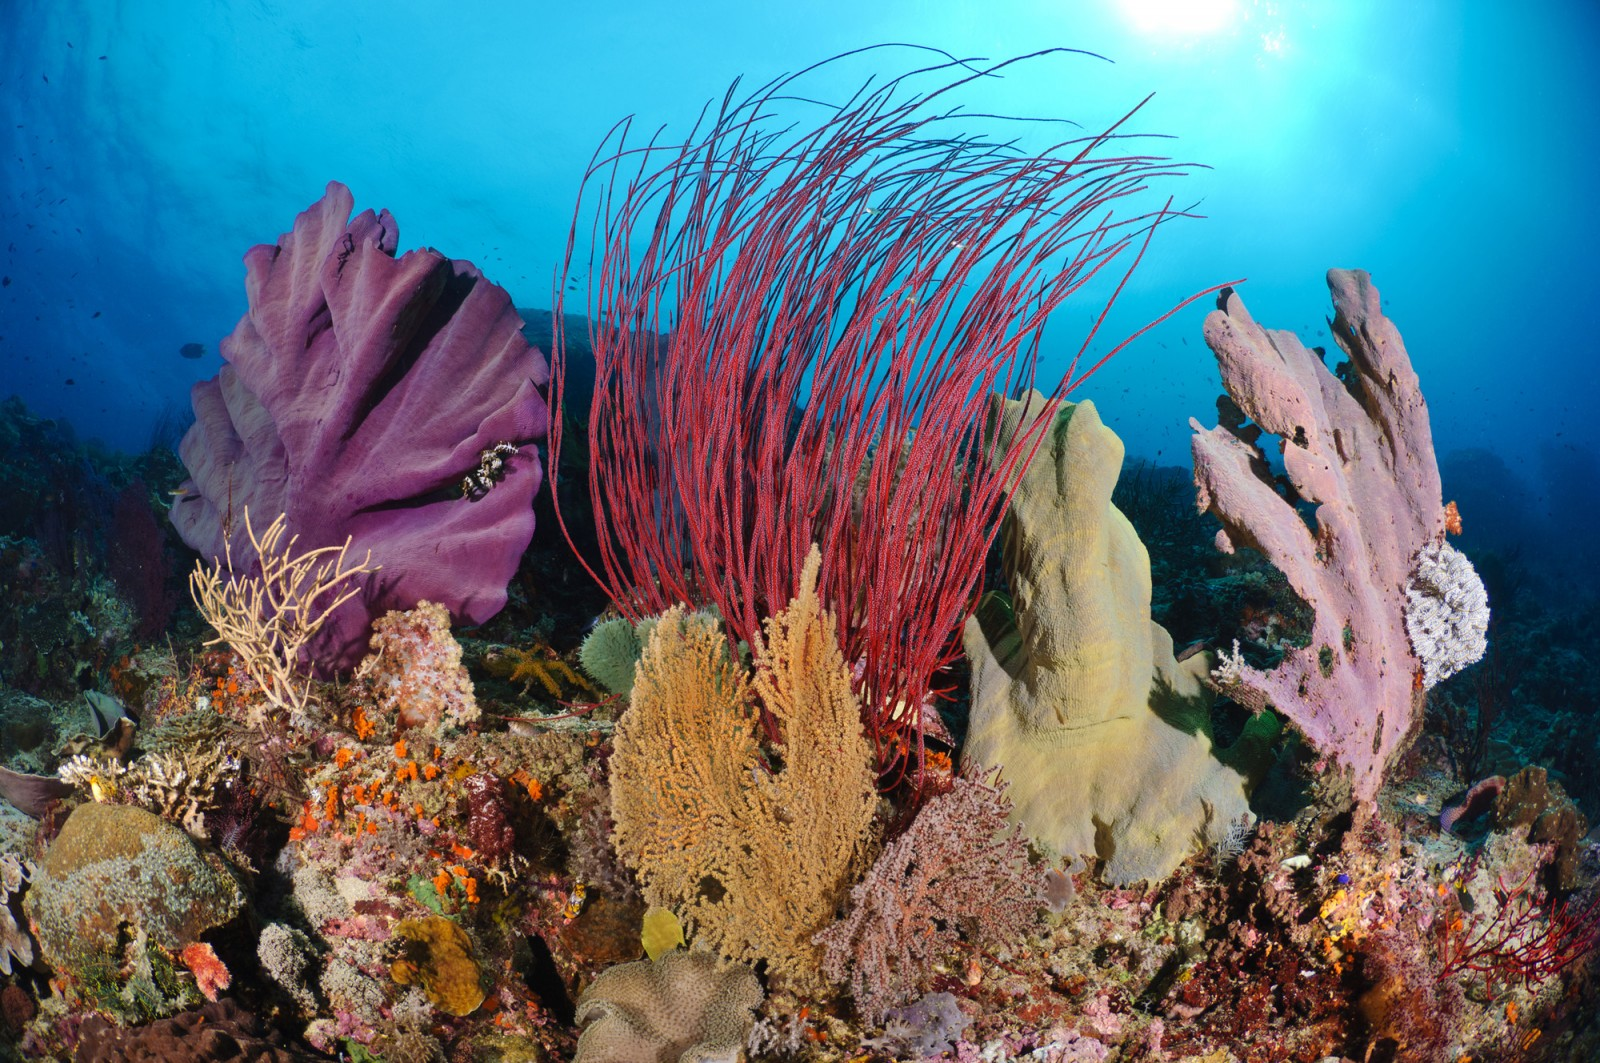 1the-reefs-of-raja-ampat-are-some-of-the-most-diverse-and-healthiest-in-the-world1.jpg